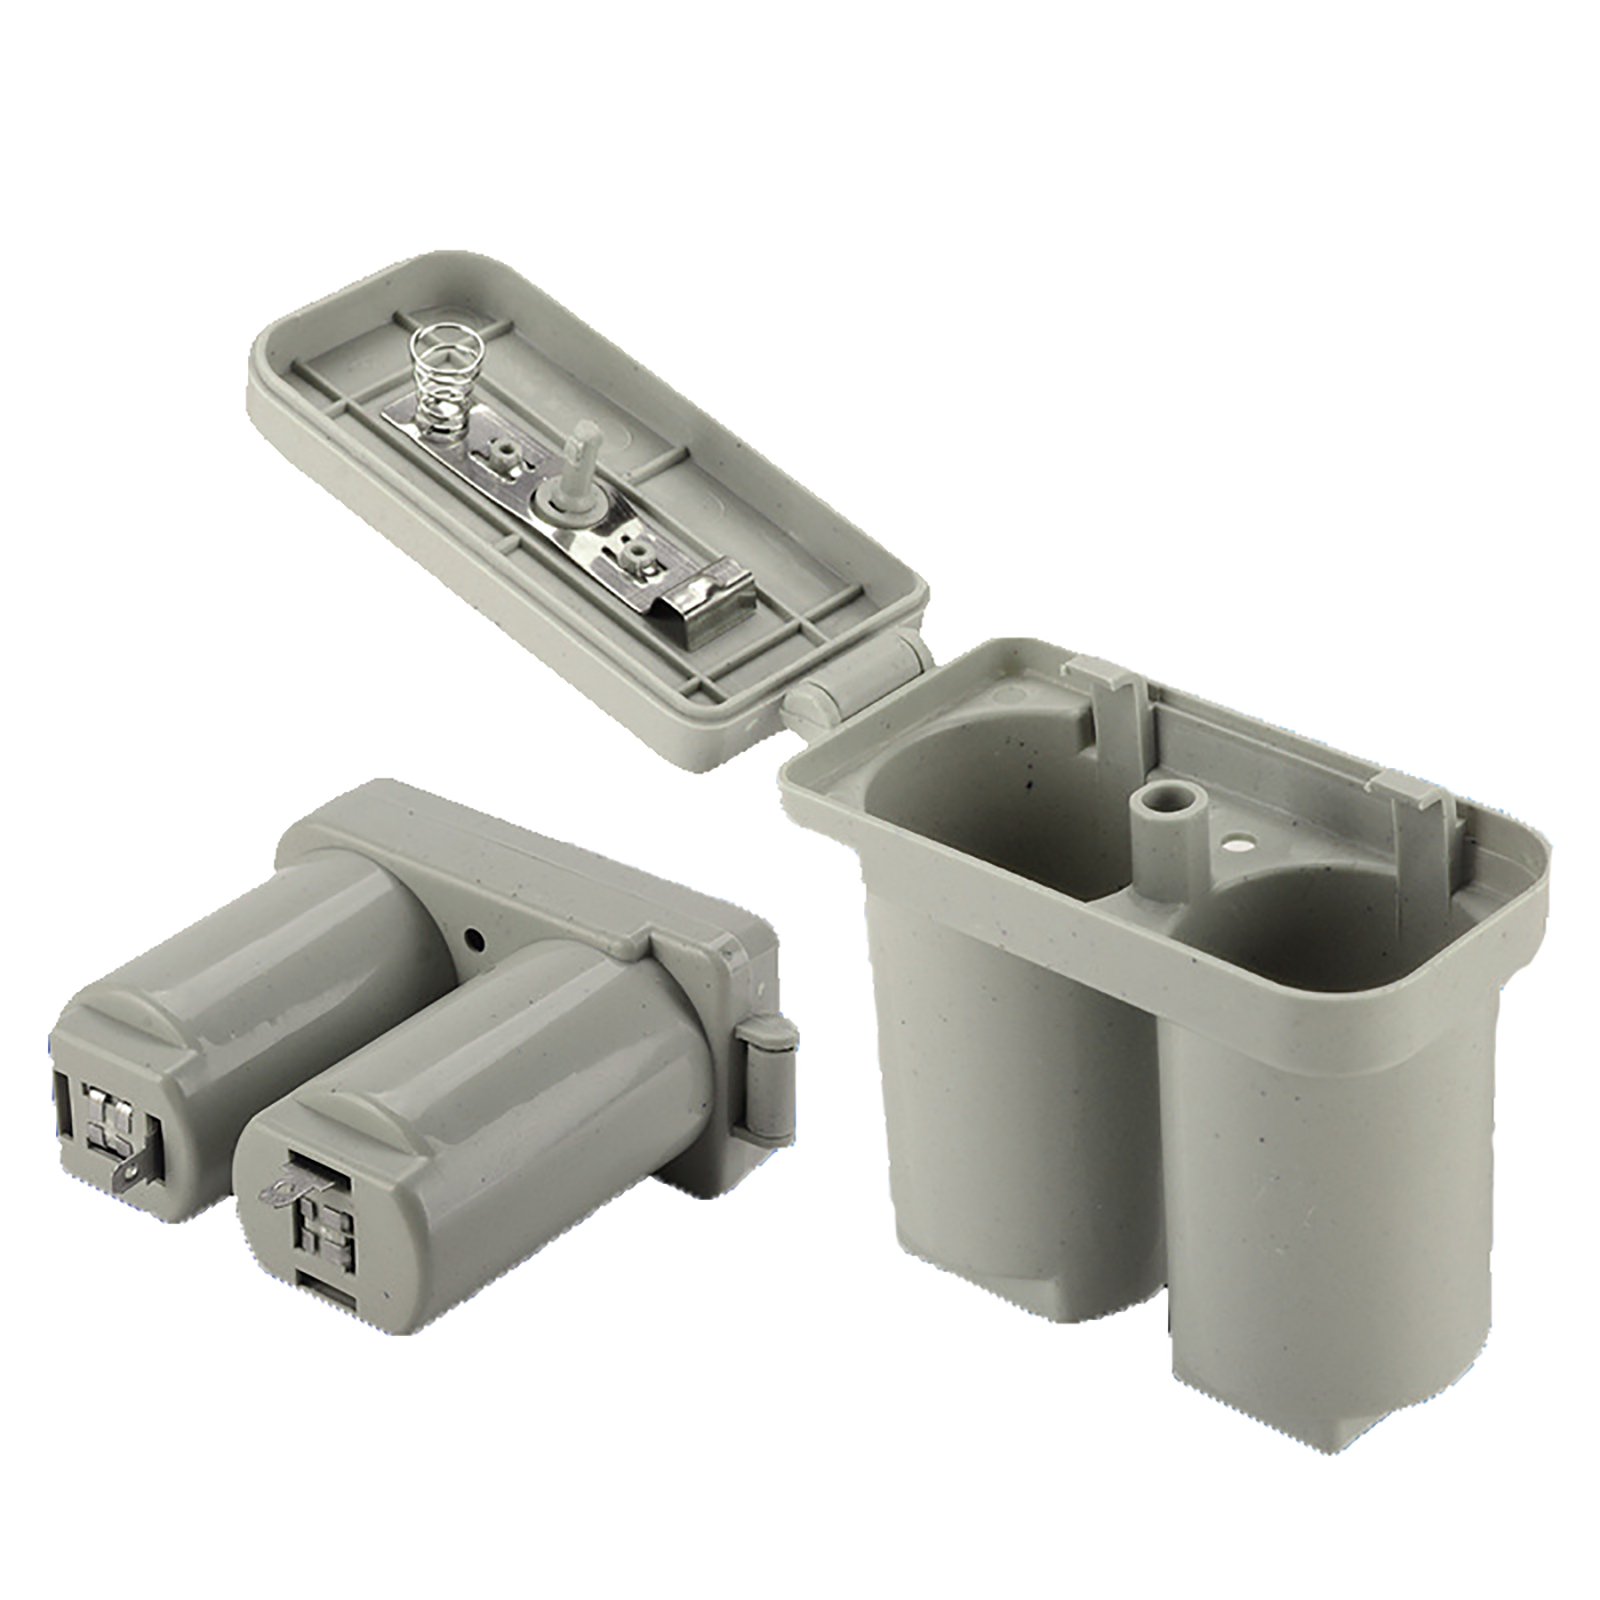 2PCS Double Battery Case Double Compartments Universal Battery Box For Gas Water Heater Accessories Dark Gray Plastic